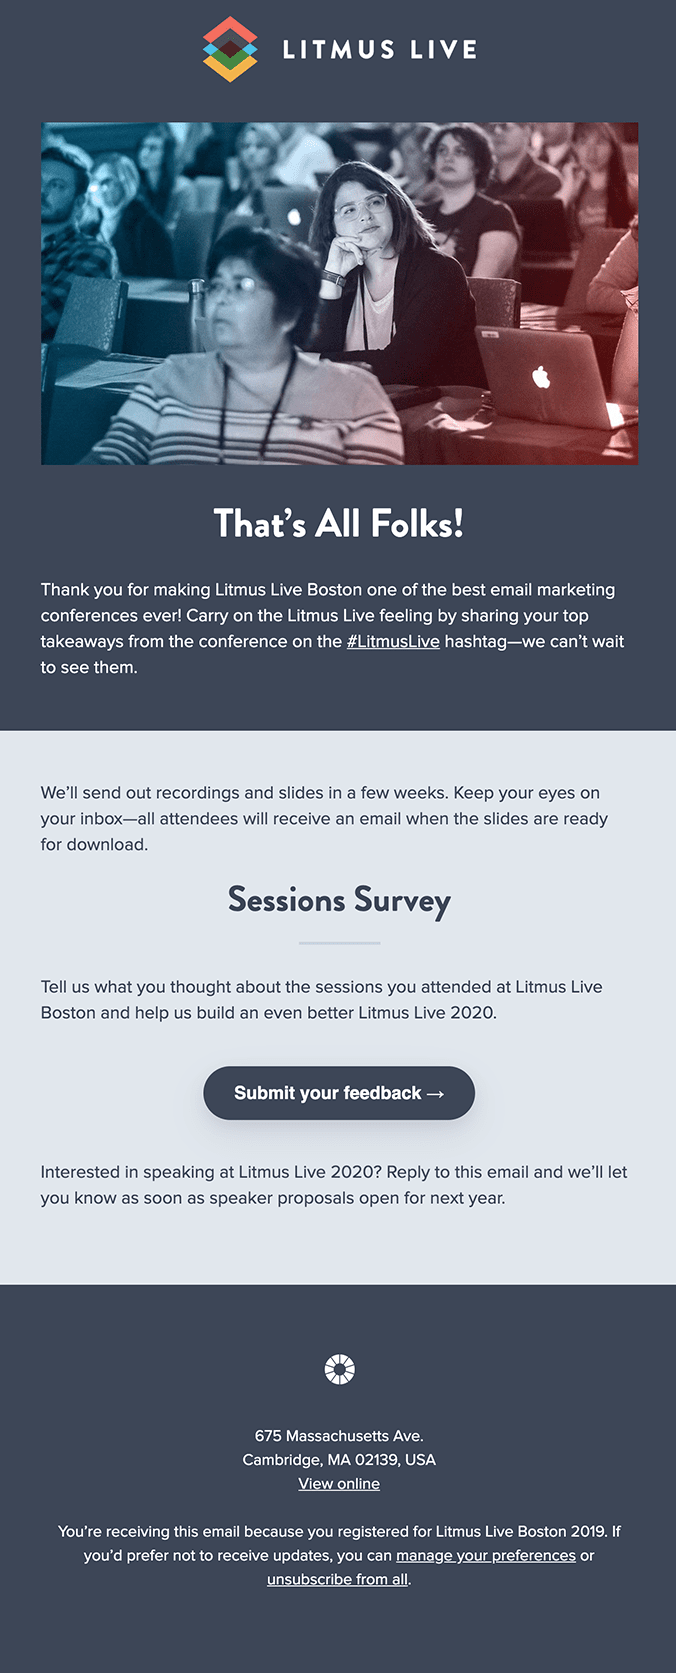 Litmus Live Event Follow-up Email